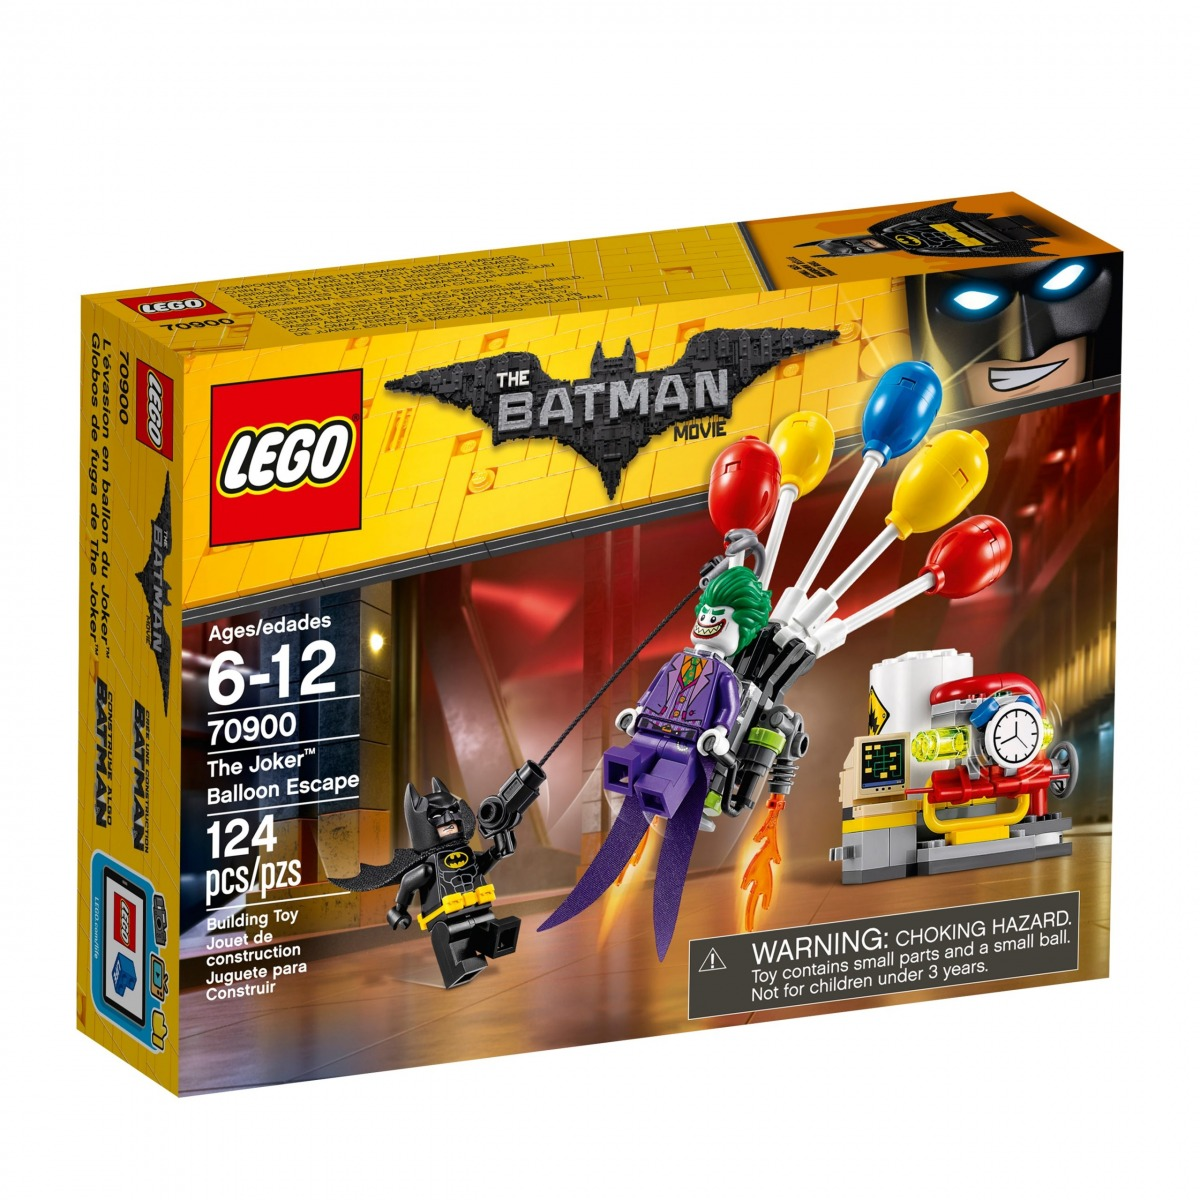 lego 70900 the joker balloon escape scaled